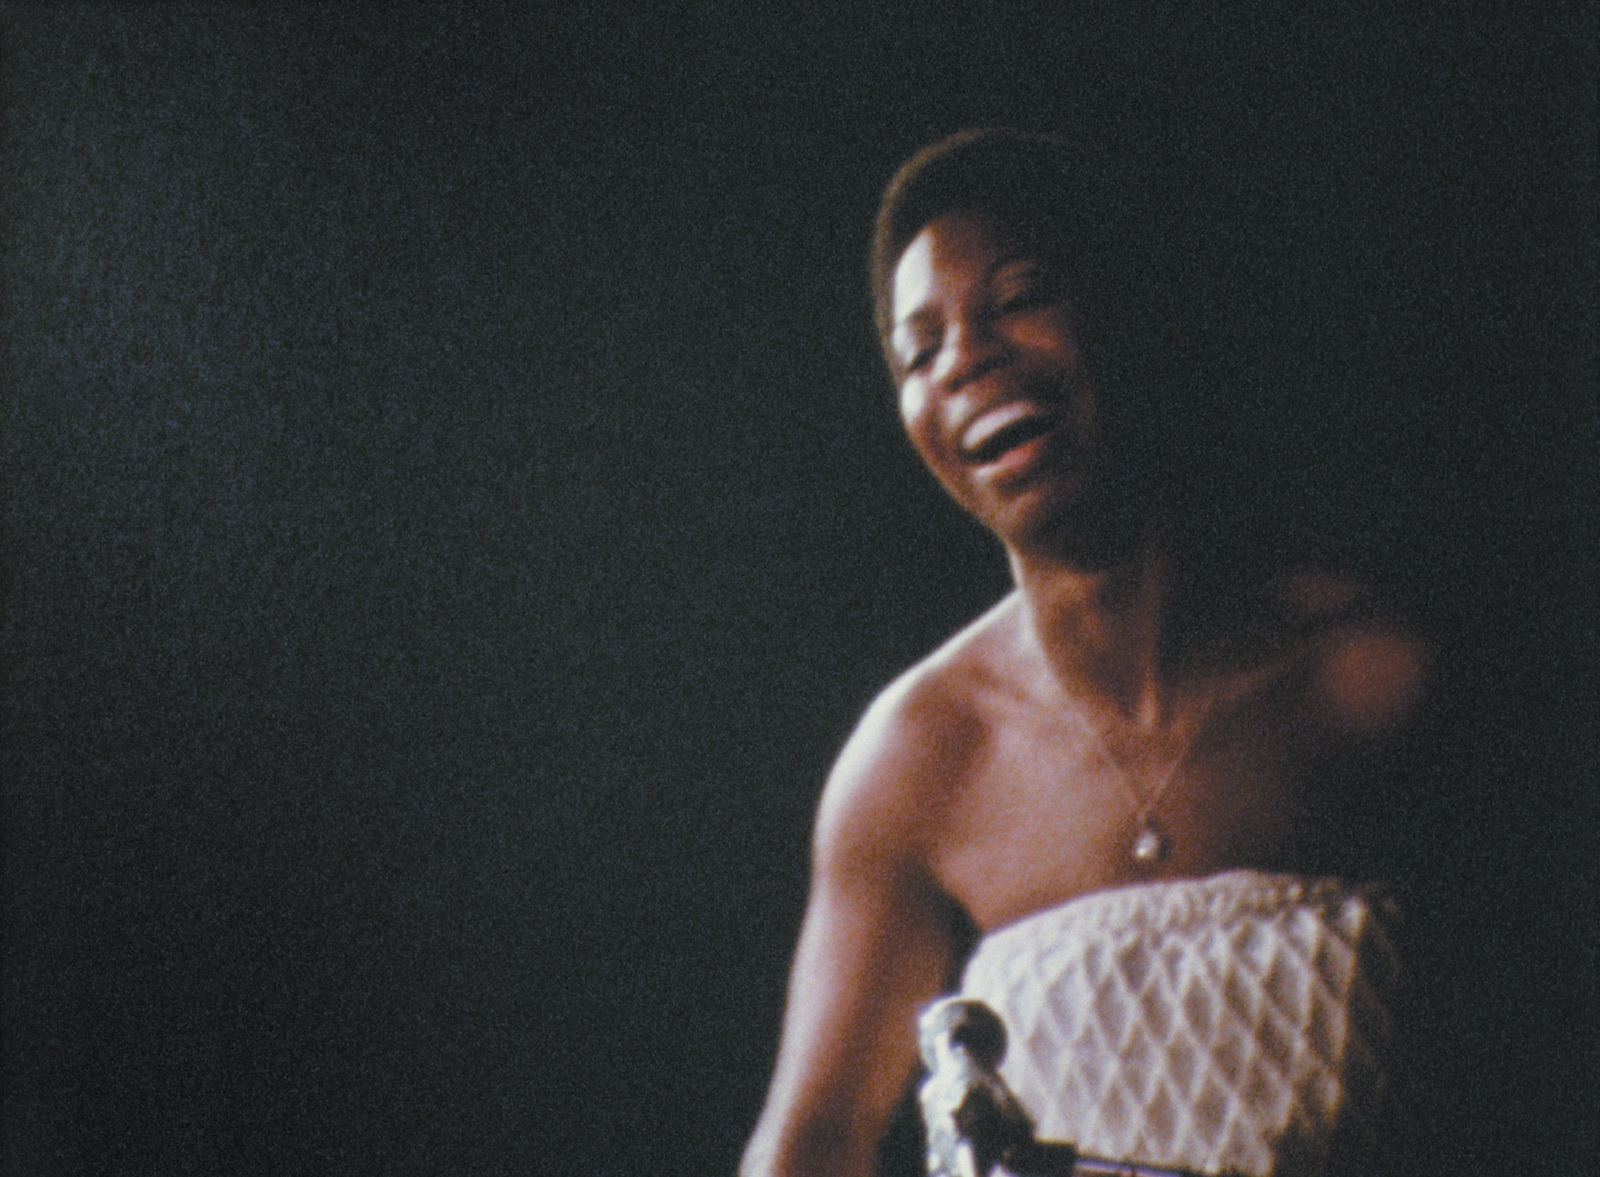 Nina Simone performing at the Village Gate, late 1960s